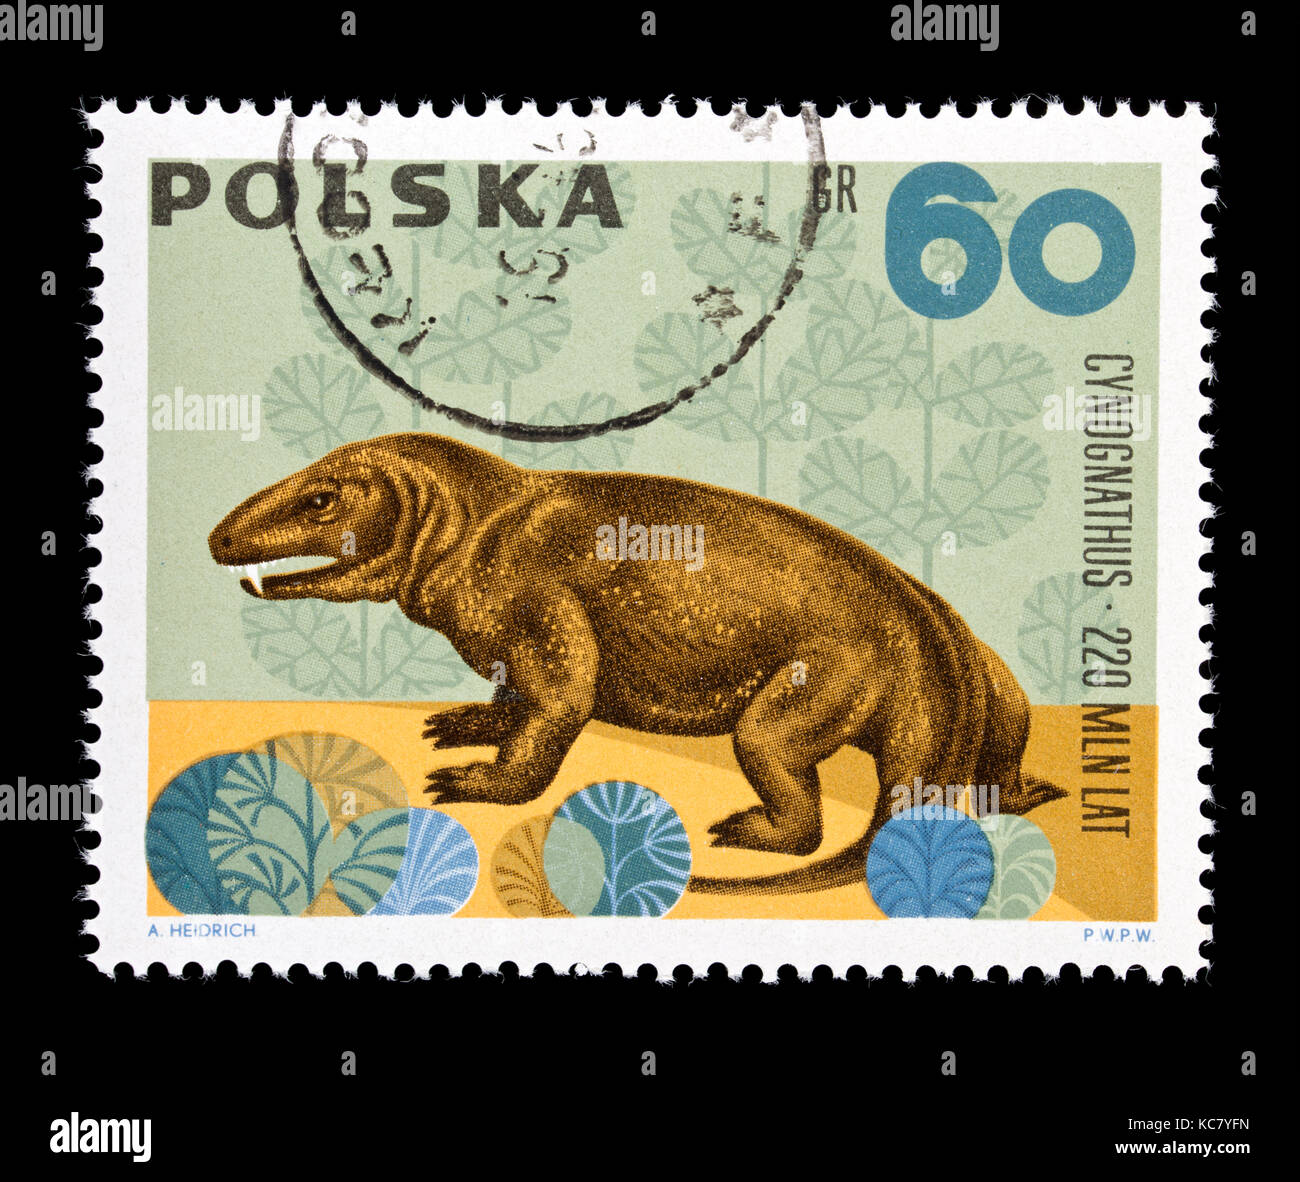 Postage stamp from Poland depicting a cynognathus - Stock Image